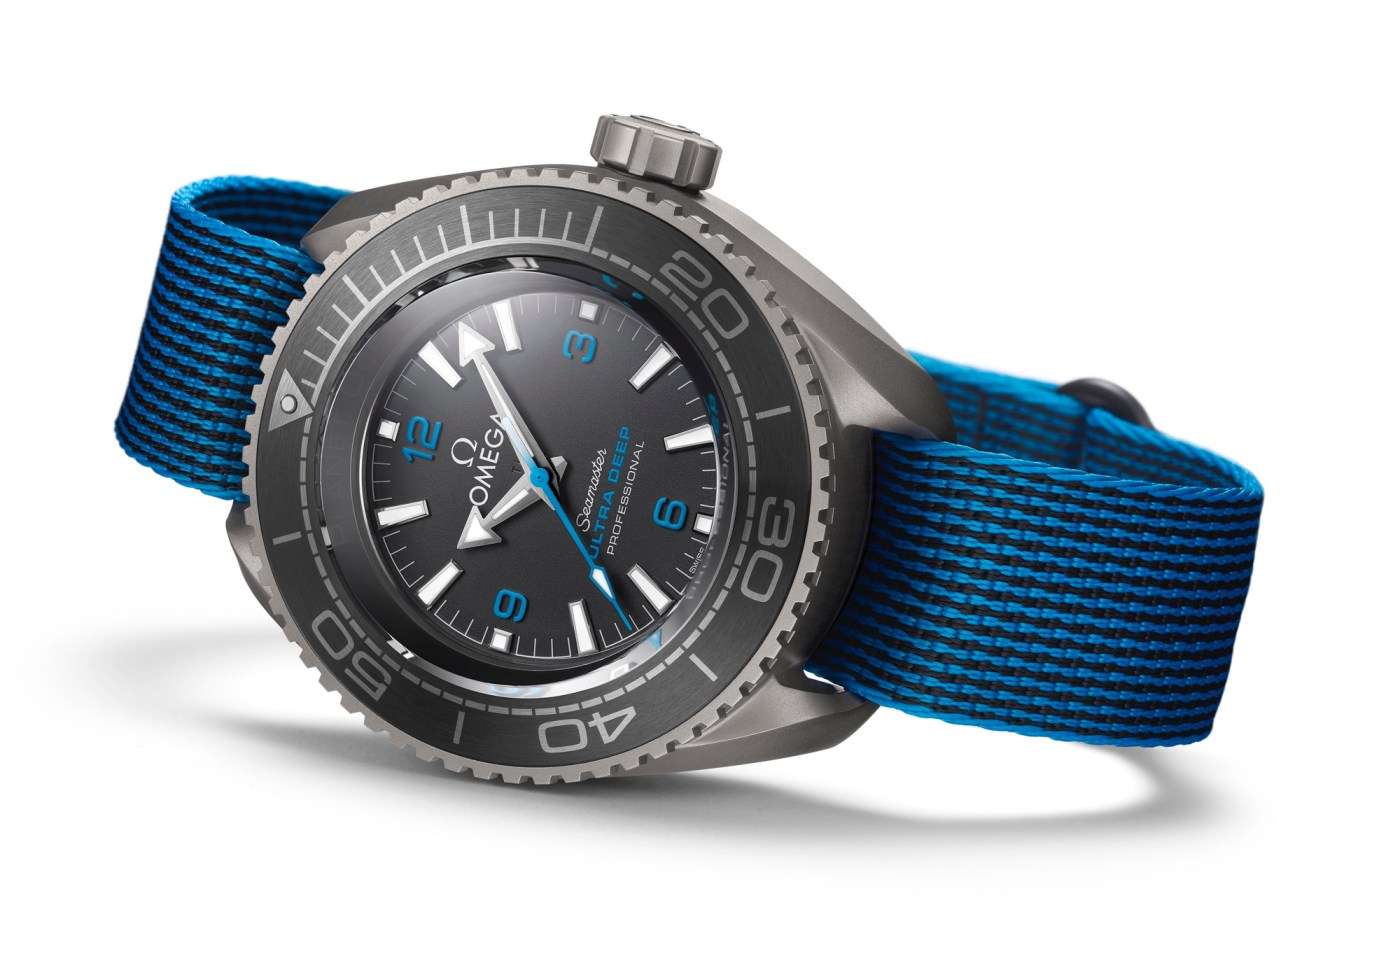 Omega Seamaster Ultra Deep Professional dive watch